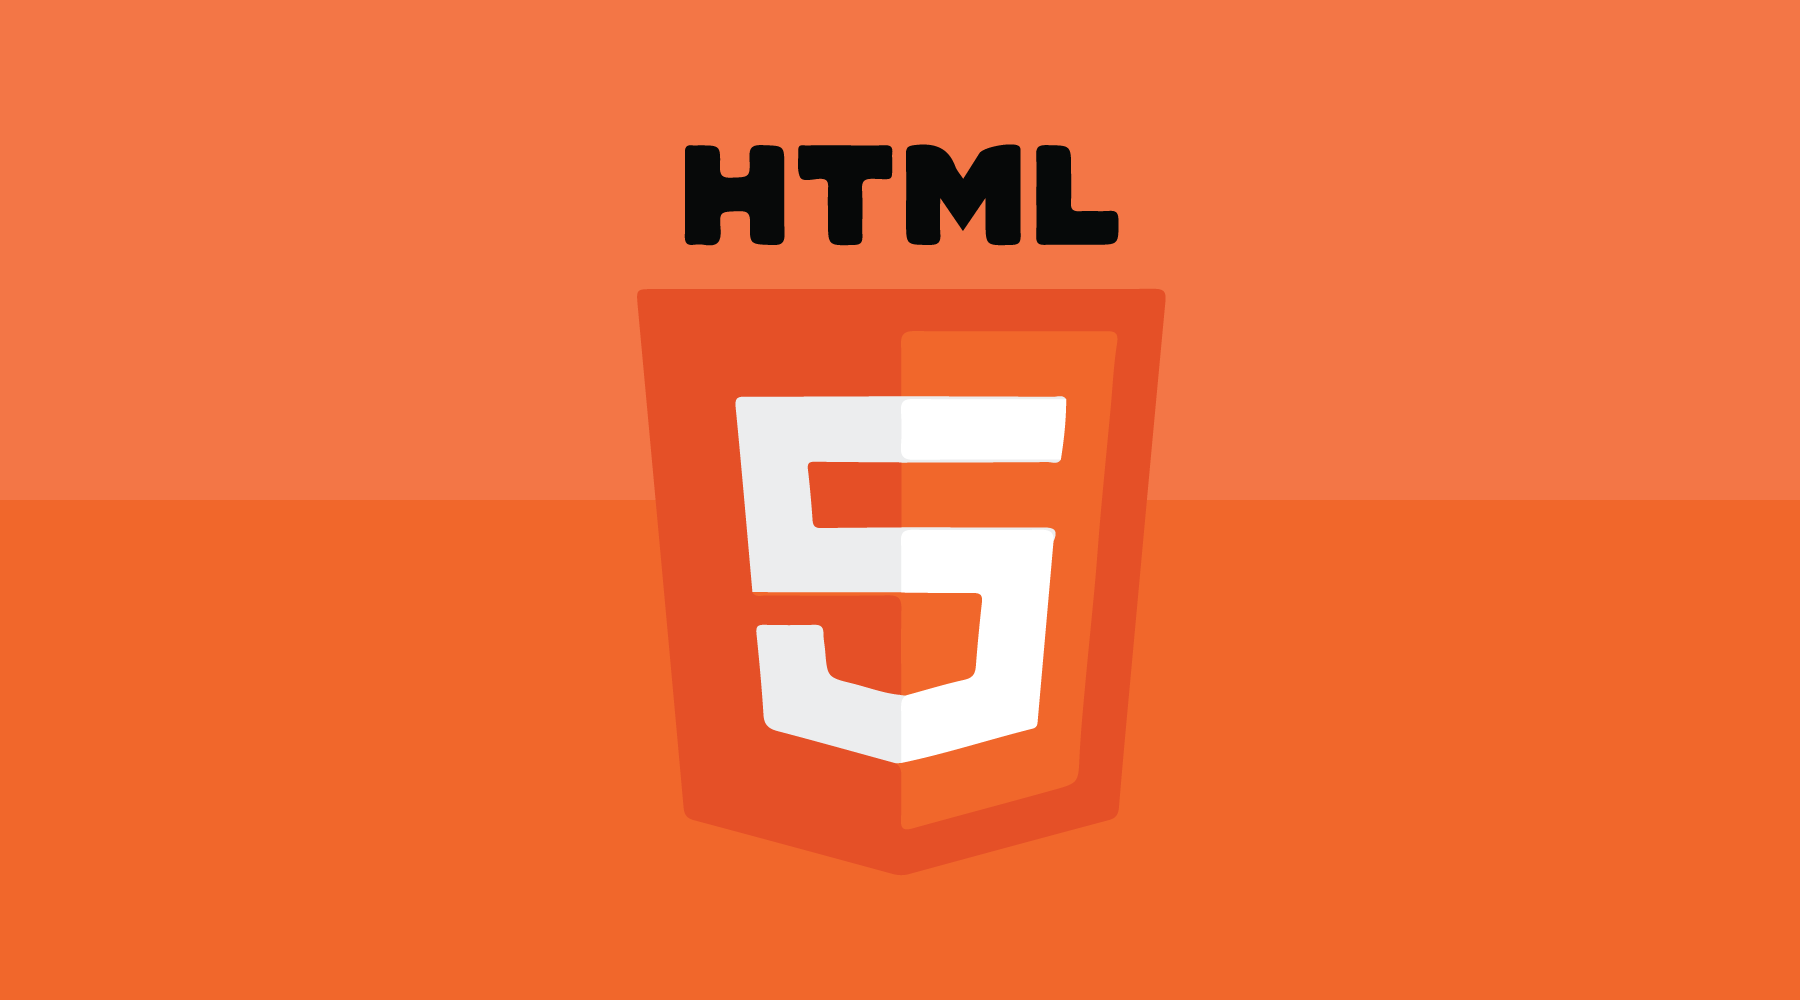 html5-logo-for-web-development